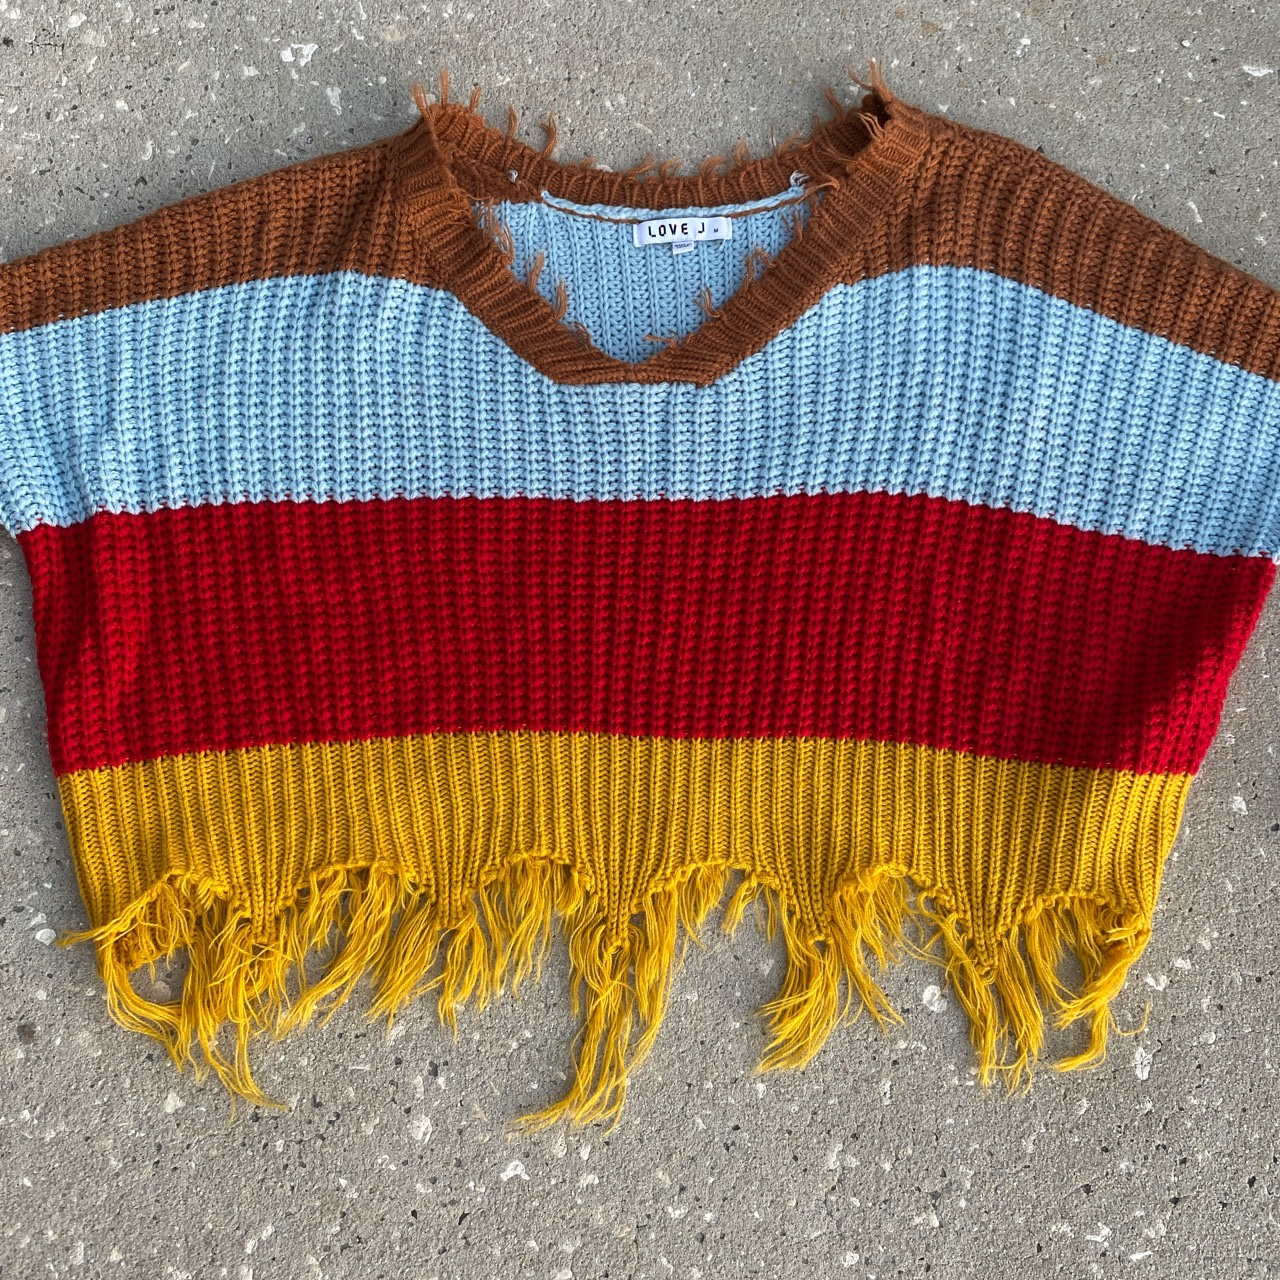 Product Image 1 - Love J multicolored striped Cropped